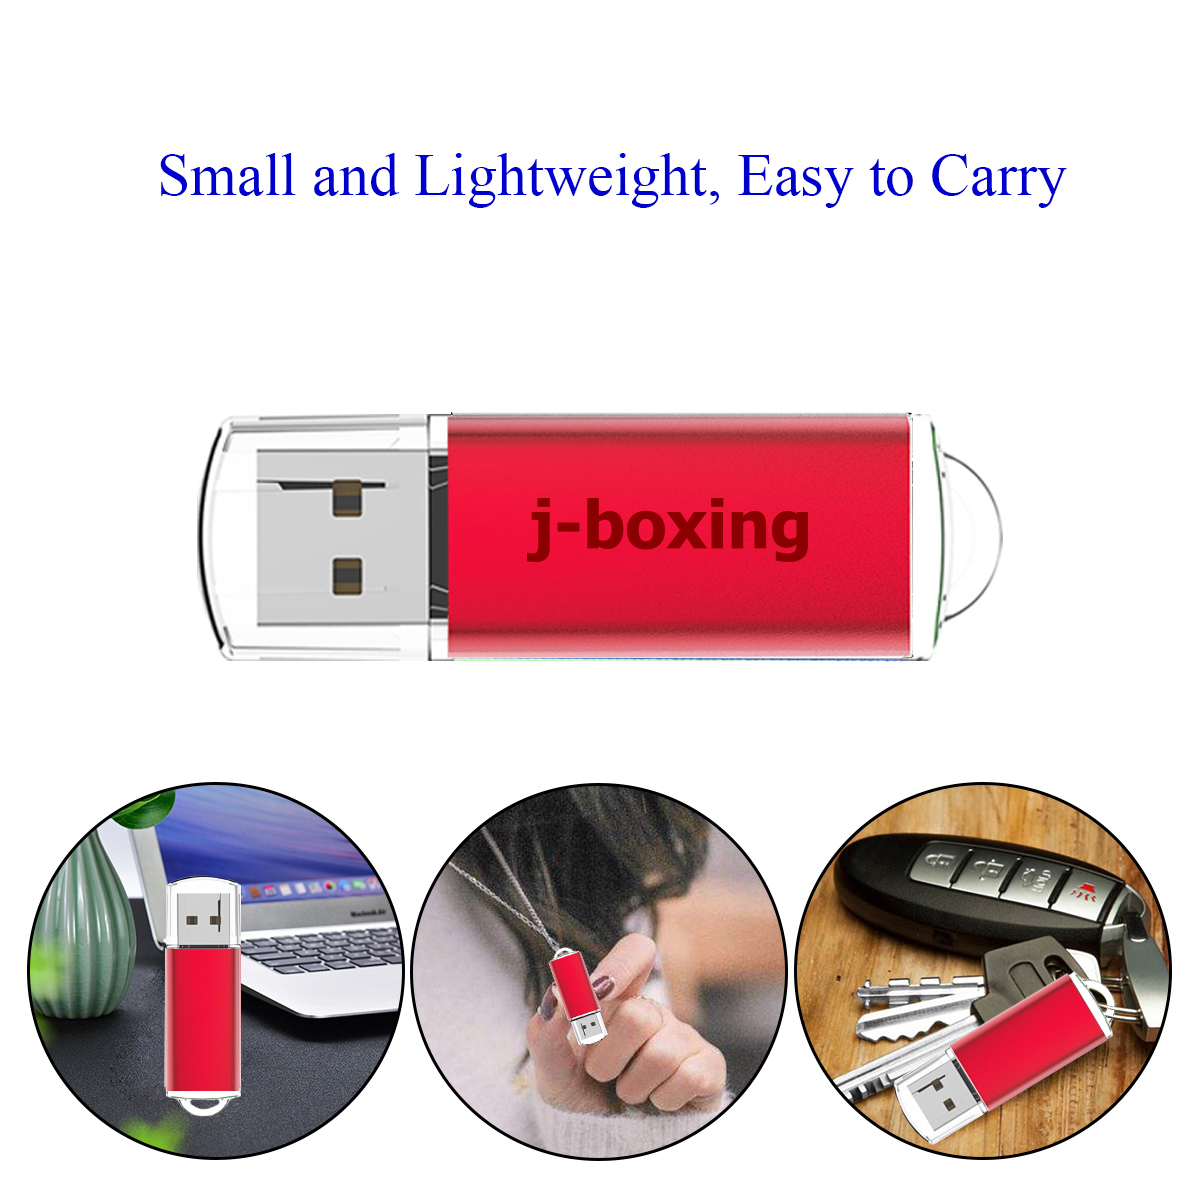 Image 3 - J boxing 512MB USB Flash Drives Pack 10PCS 64MB 128MB 256MB Small Cacapity Pendrives Zip Drives Bulk USB Data Storage Red-in USB Flash Drives from Computer & Office